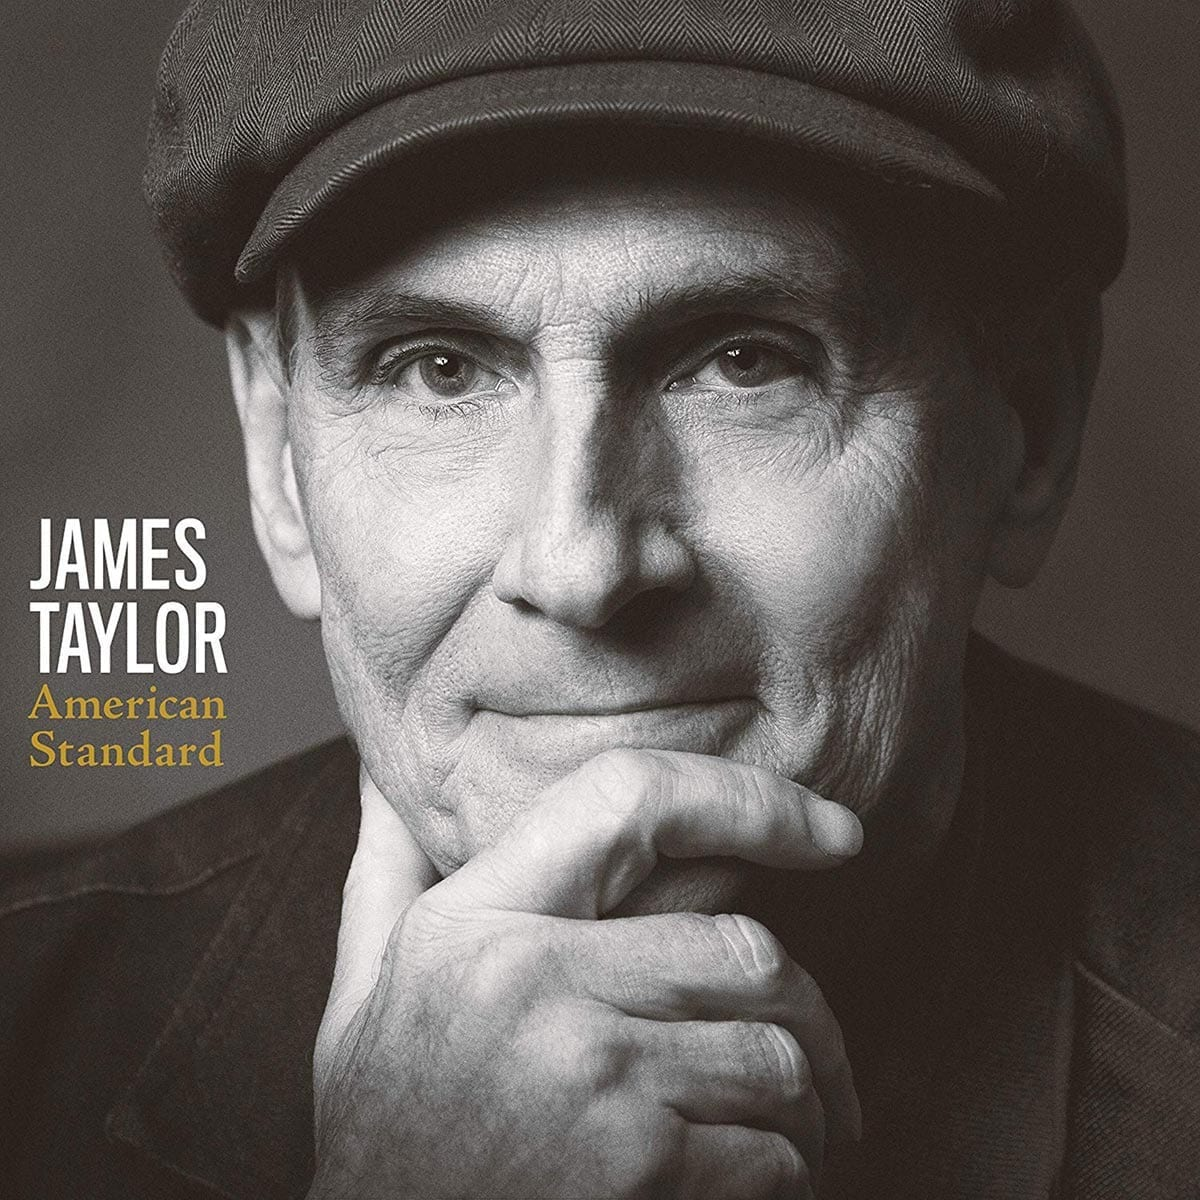 James Taylor Announces New Album, U.S. Tour with Jackson Browne